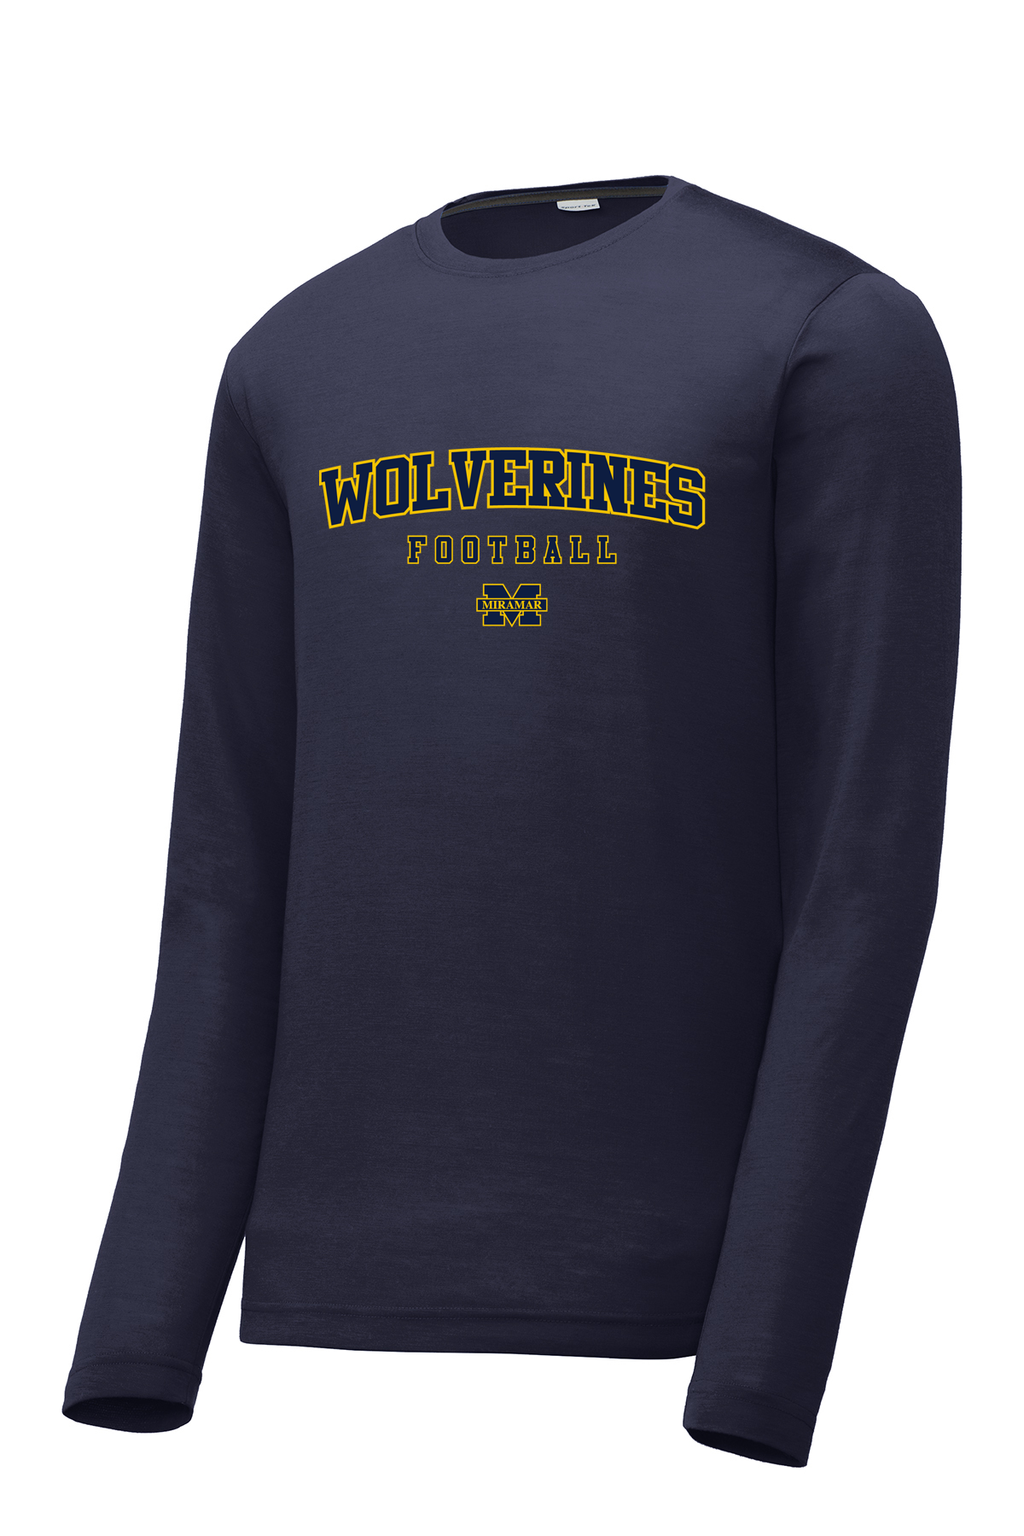 Miramar Wolverines Football Long Sleeve CottonTouch Performance Shirt